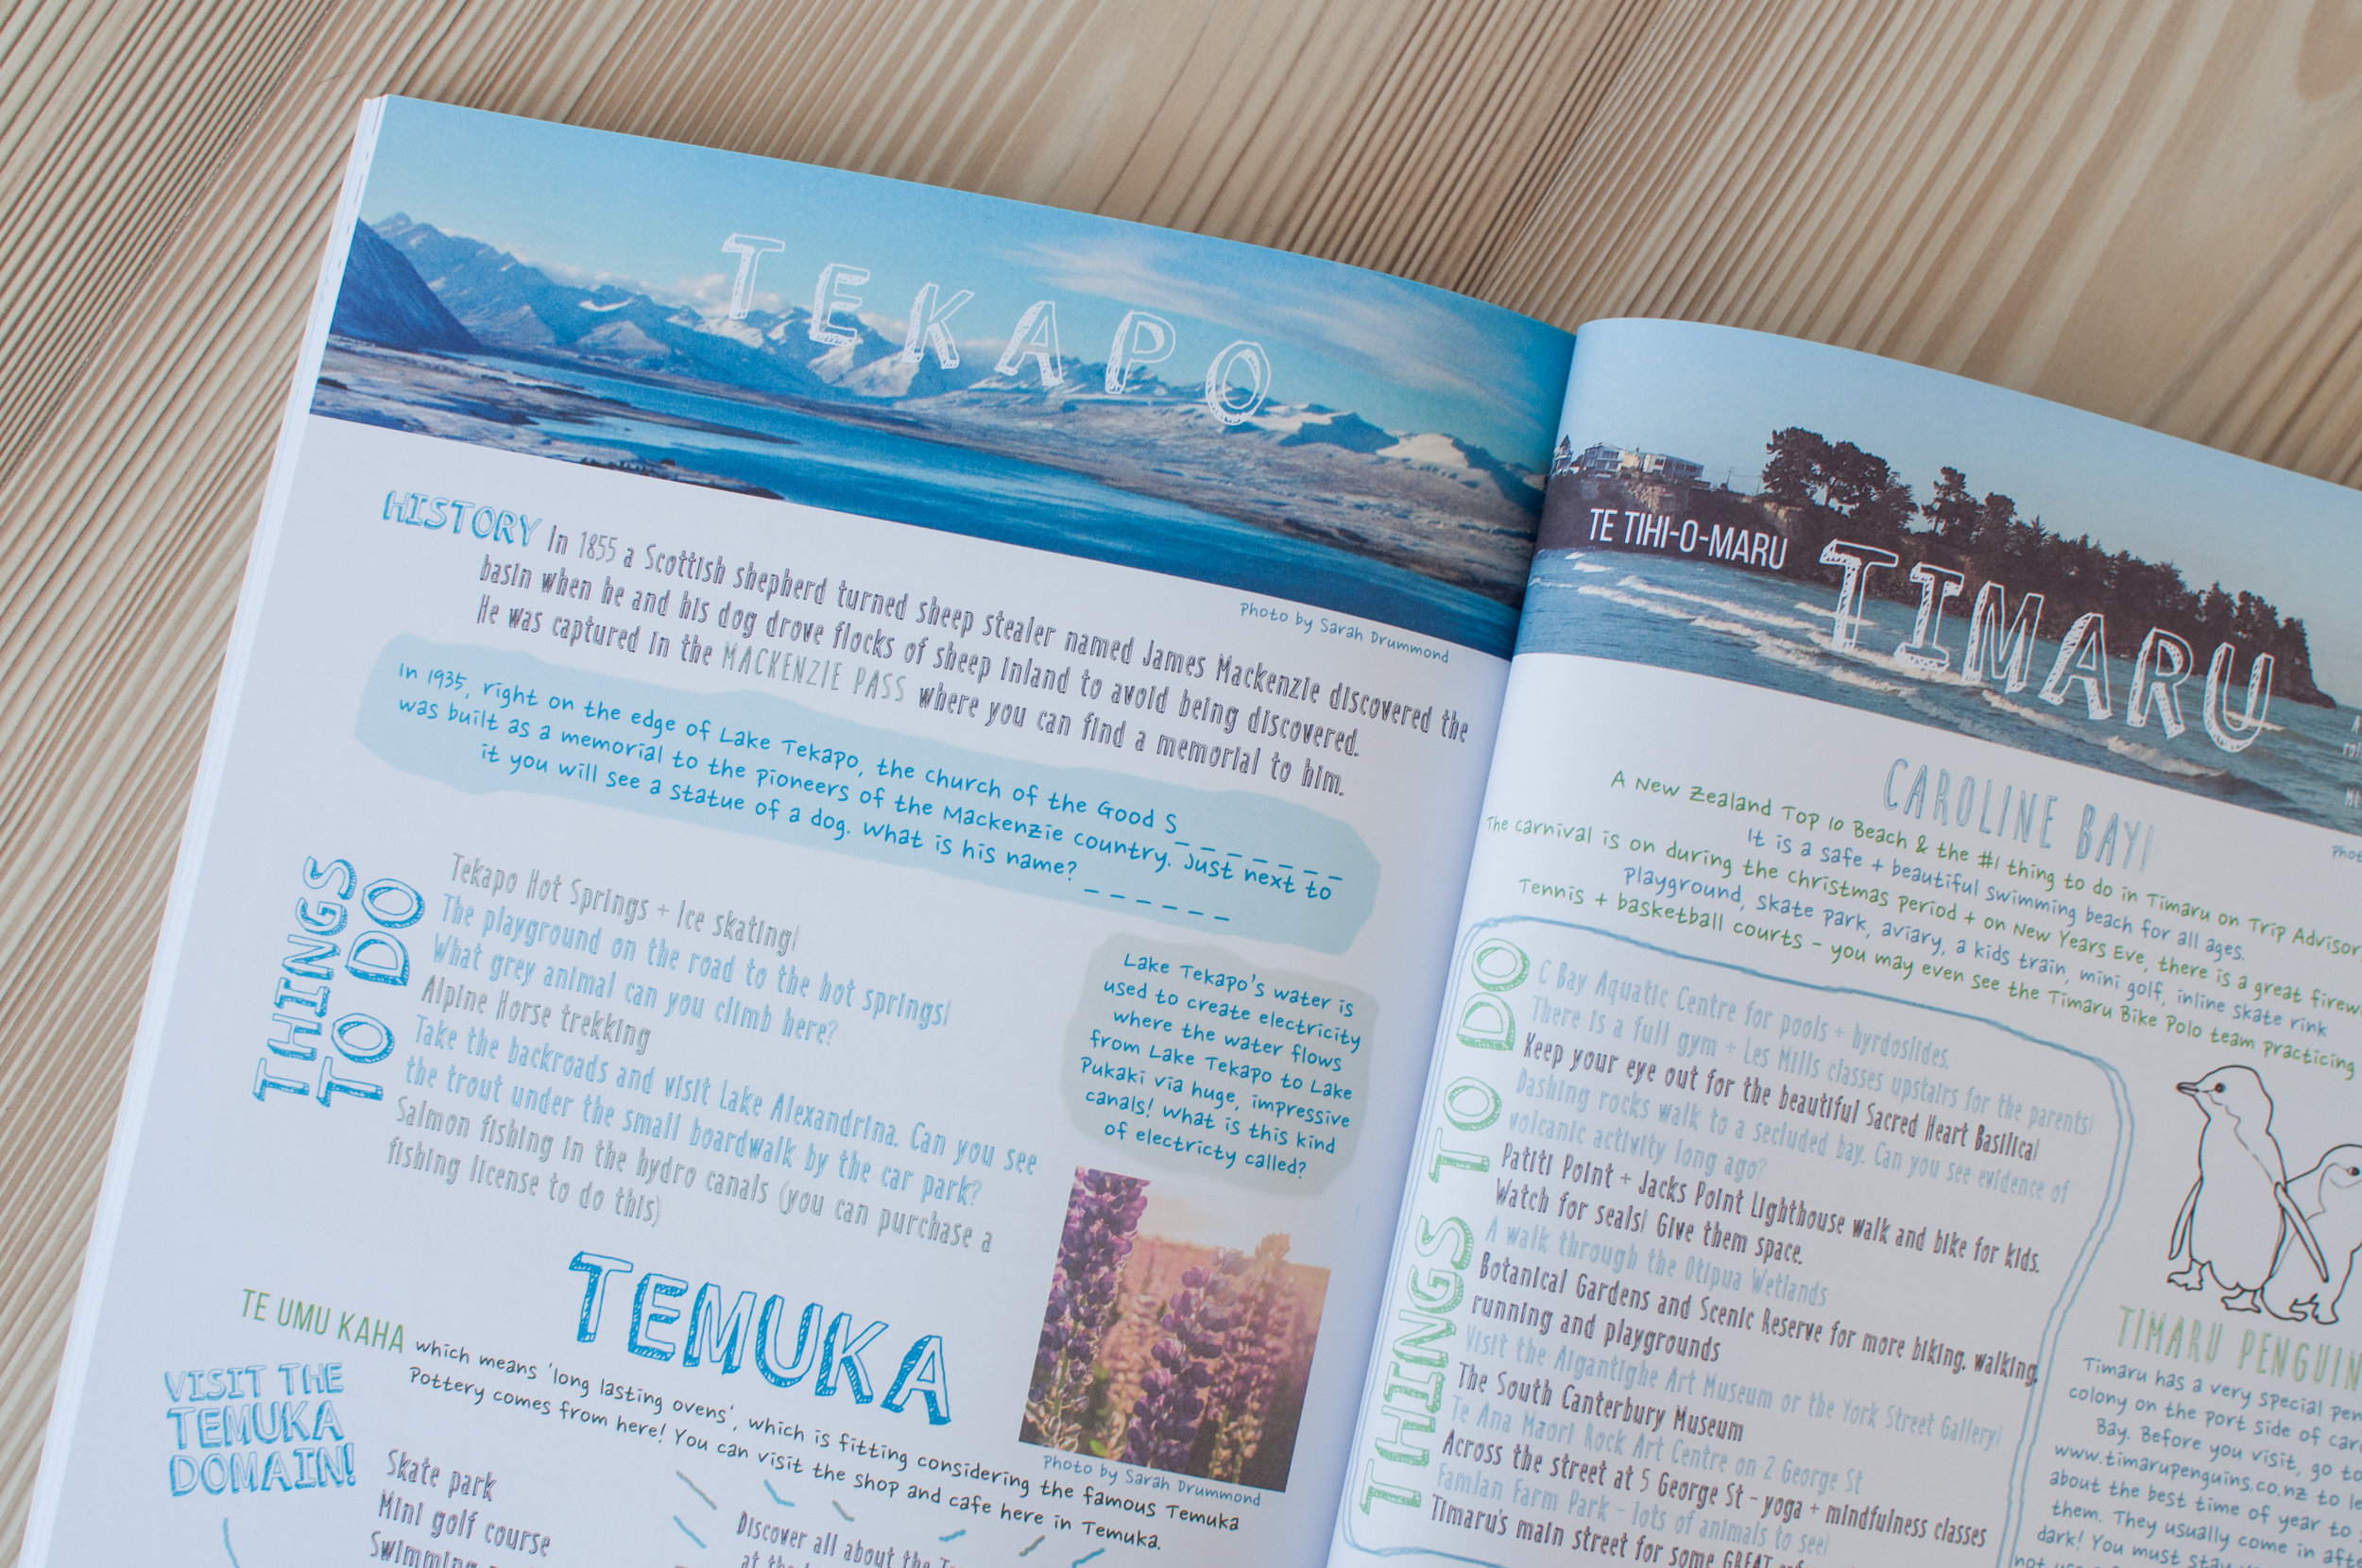 Want to learn more about Lake Tekapo and Timaru?